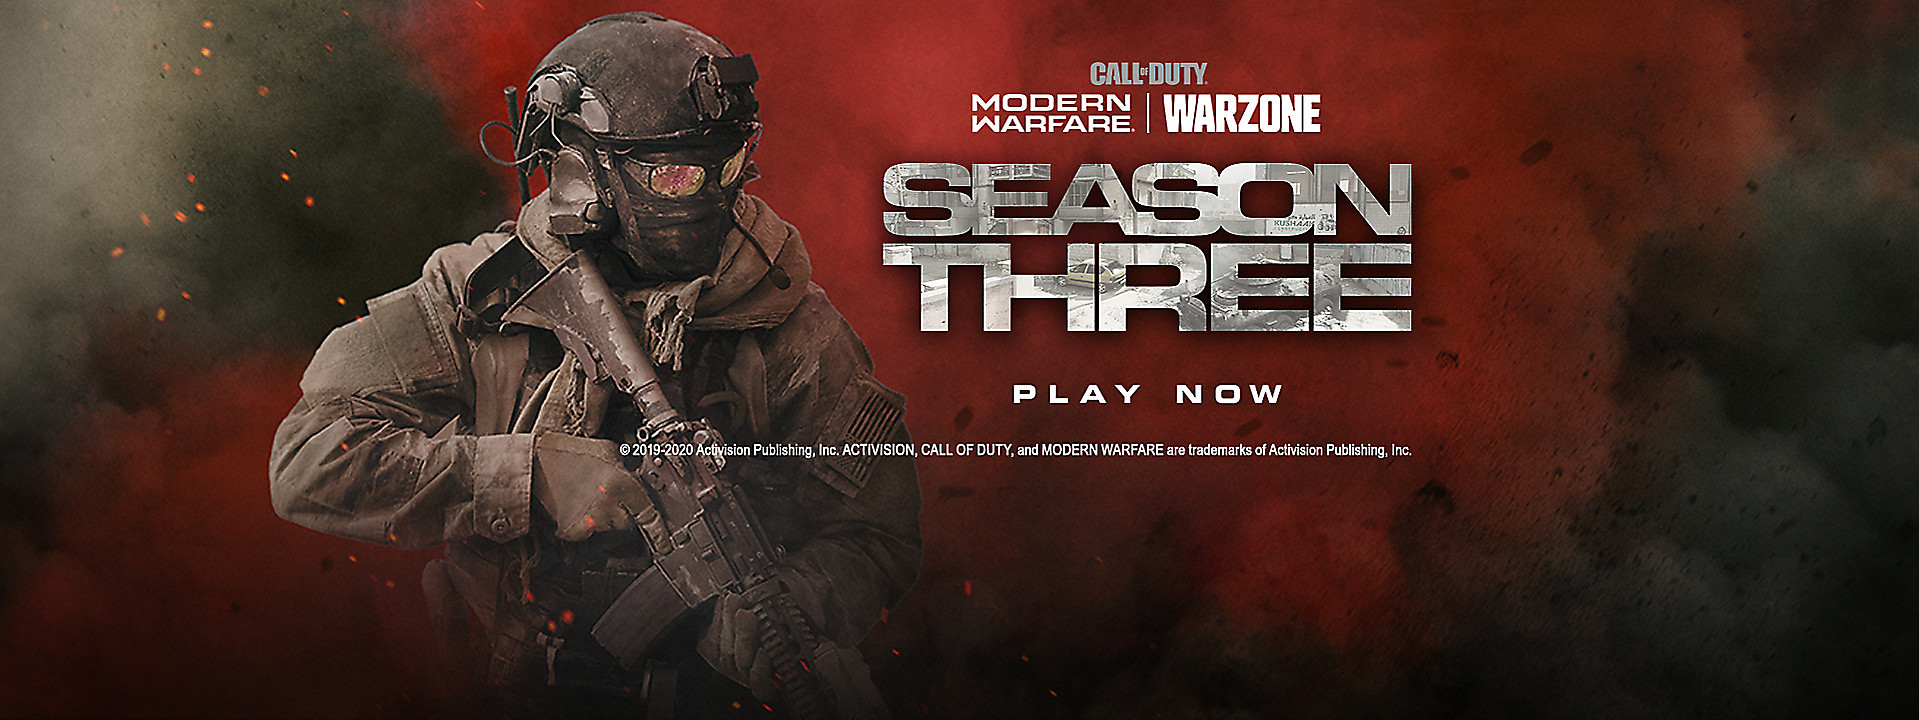 Call of Duty: Modern Warfare - Season 3 Now Available